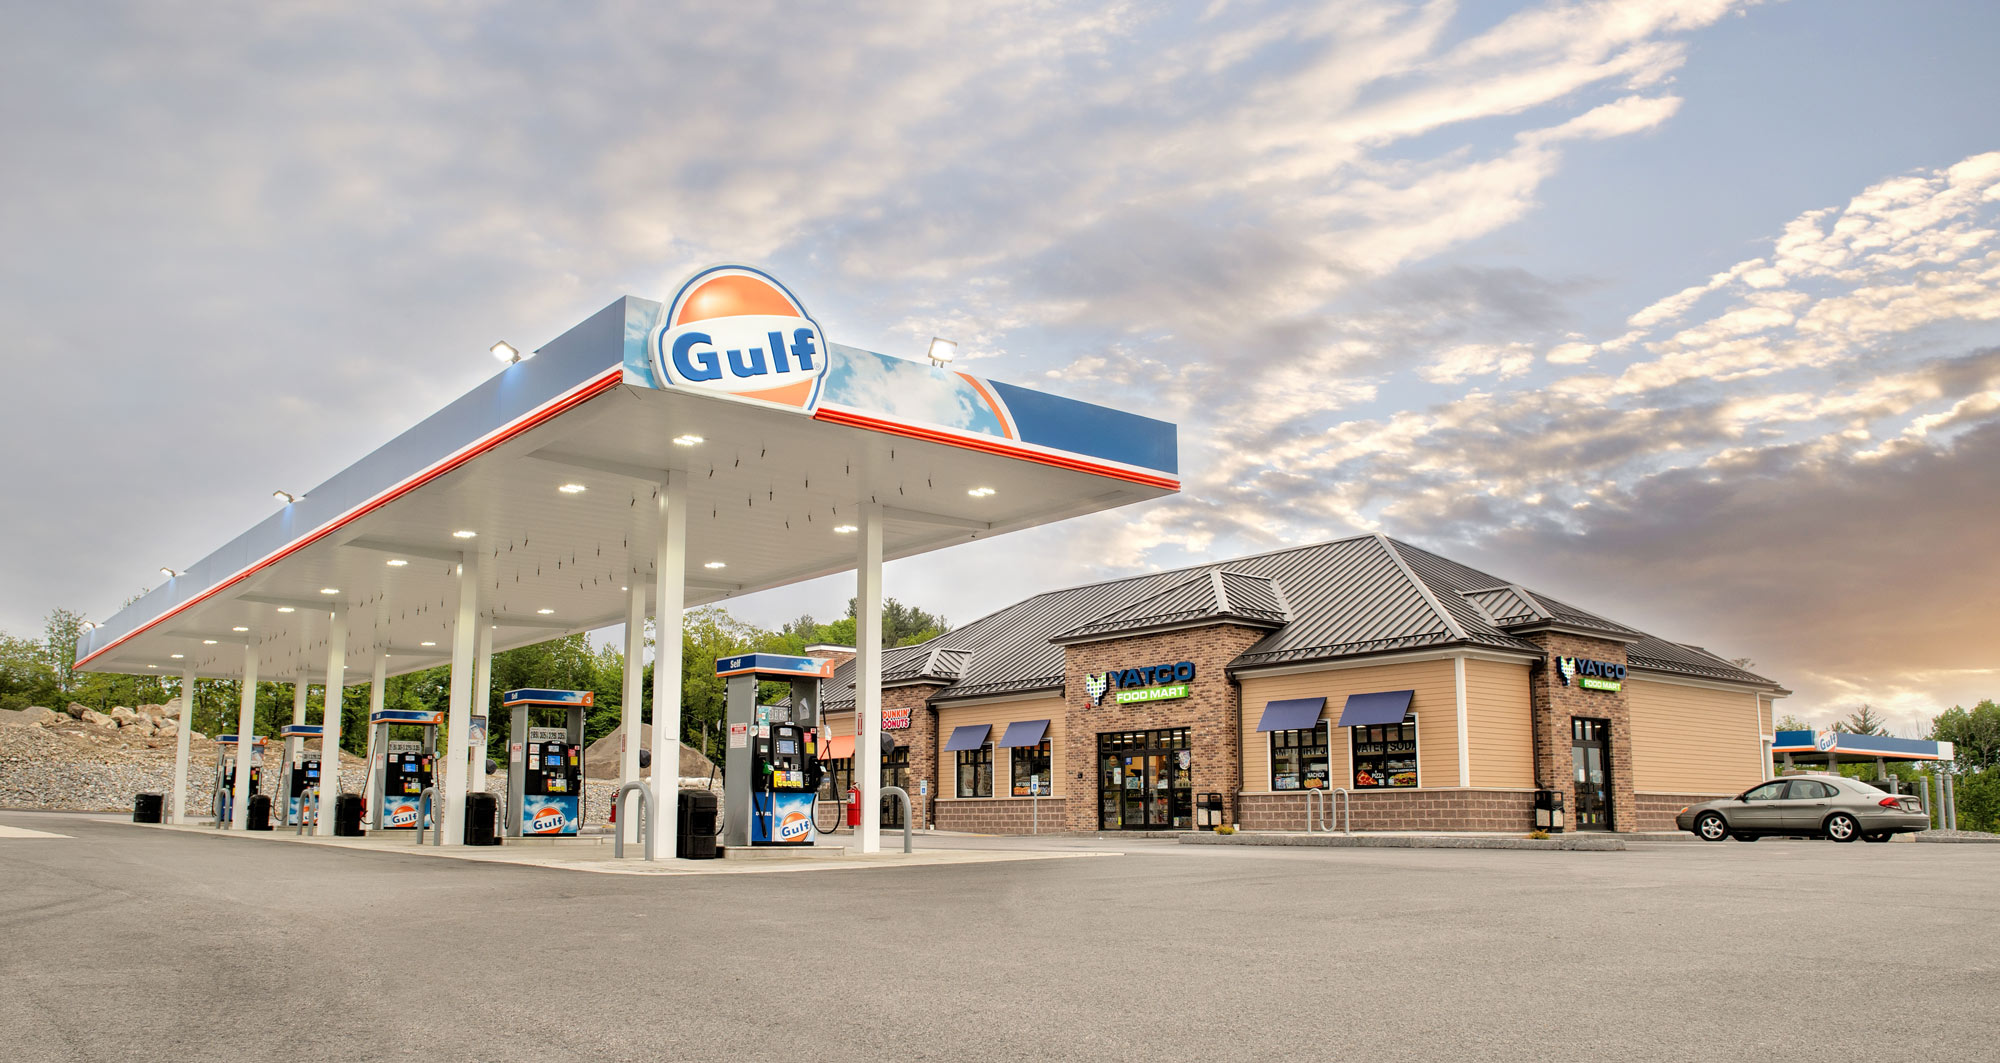 Gas Station, Gulf gas station, Fuel Delivery MA, fuel delivery massachusetts, Yatco Energy, Yatco Energy Massachusetts